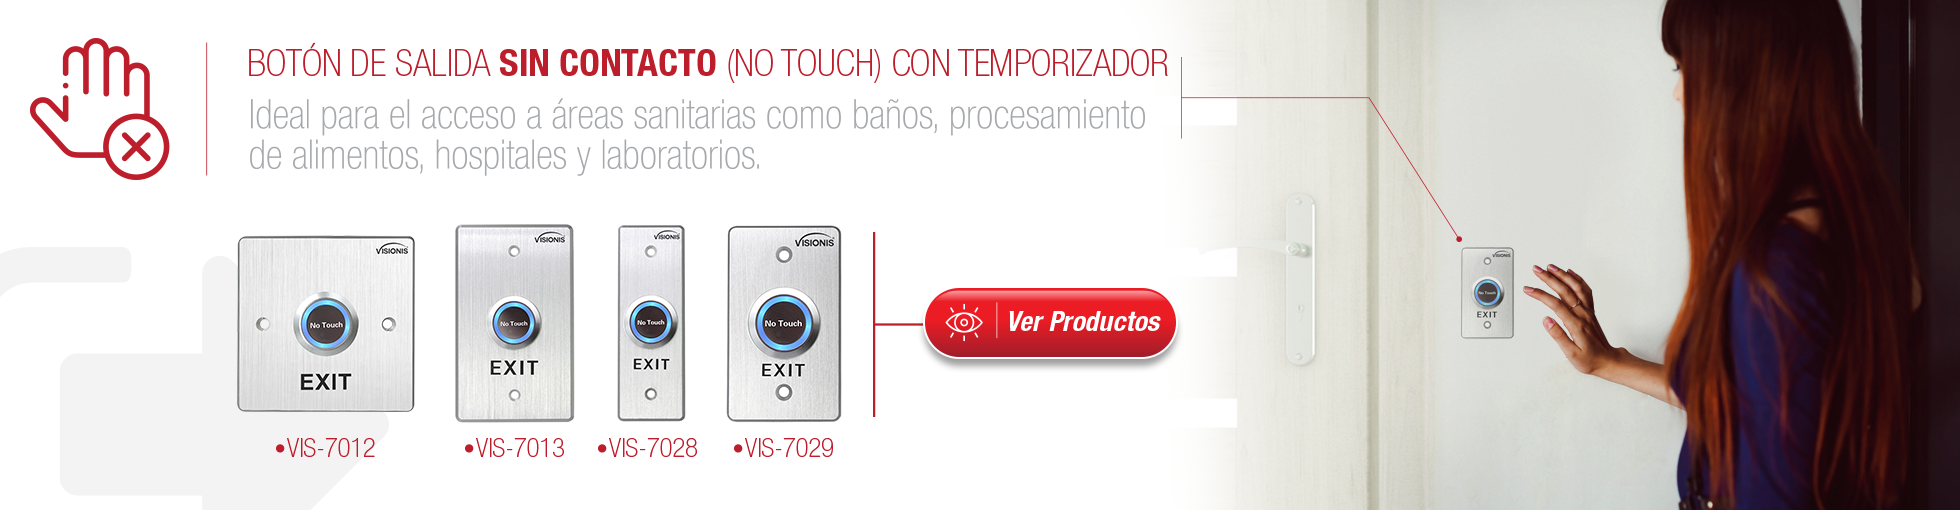 no touch buttons home banner mar2020 es